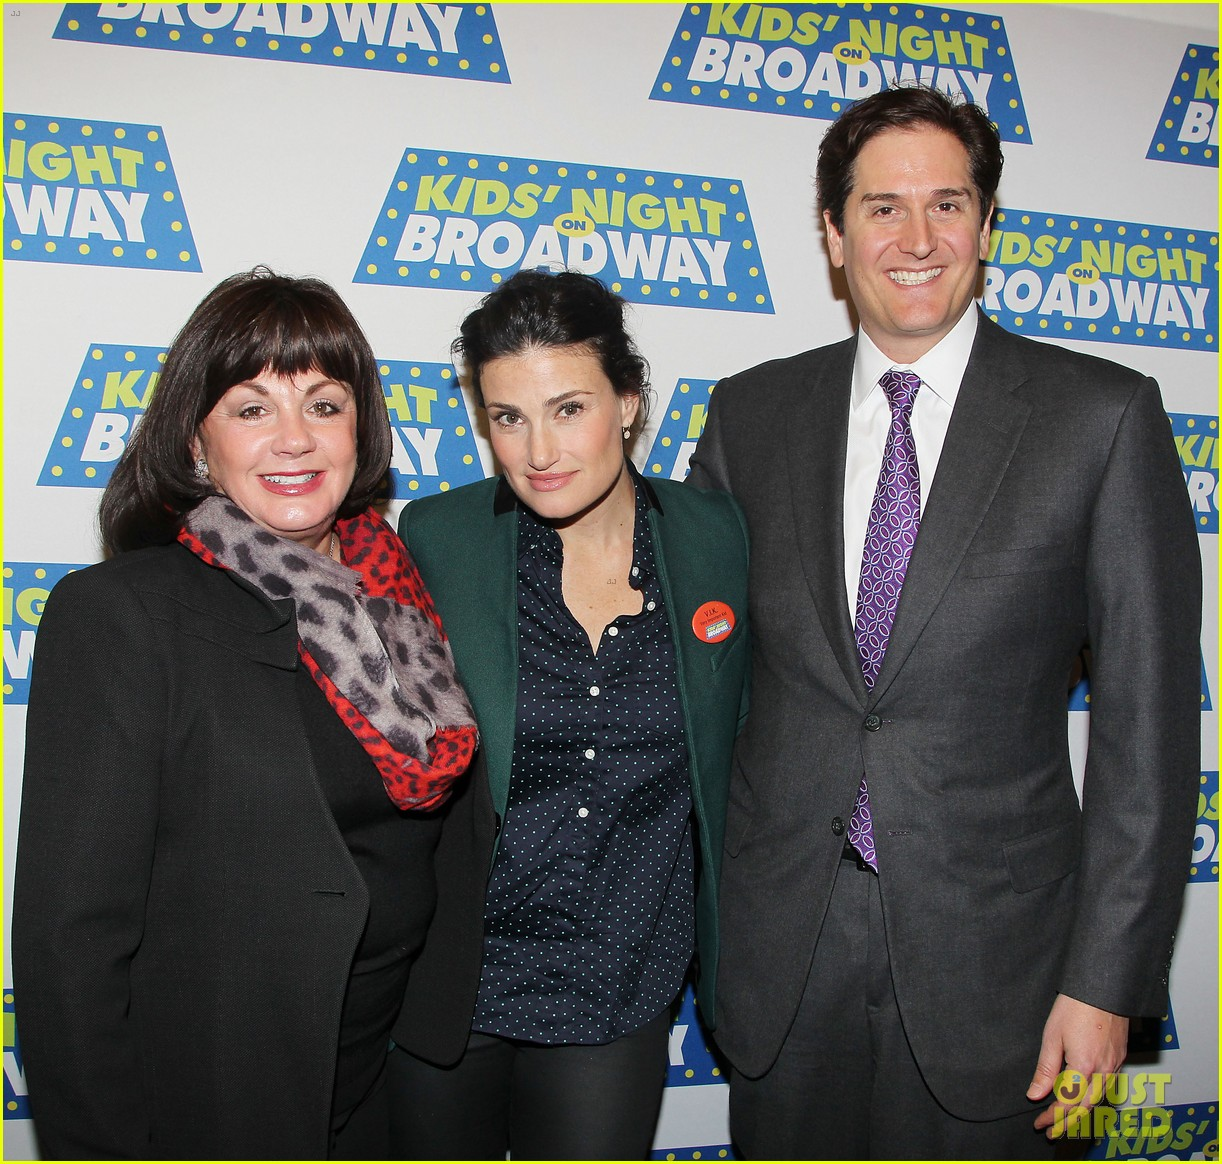 frozens idina menzel sings tomorrow at broadway event 093038713